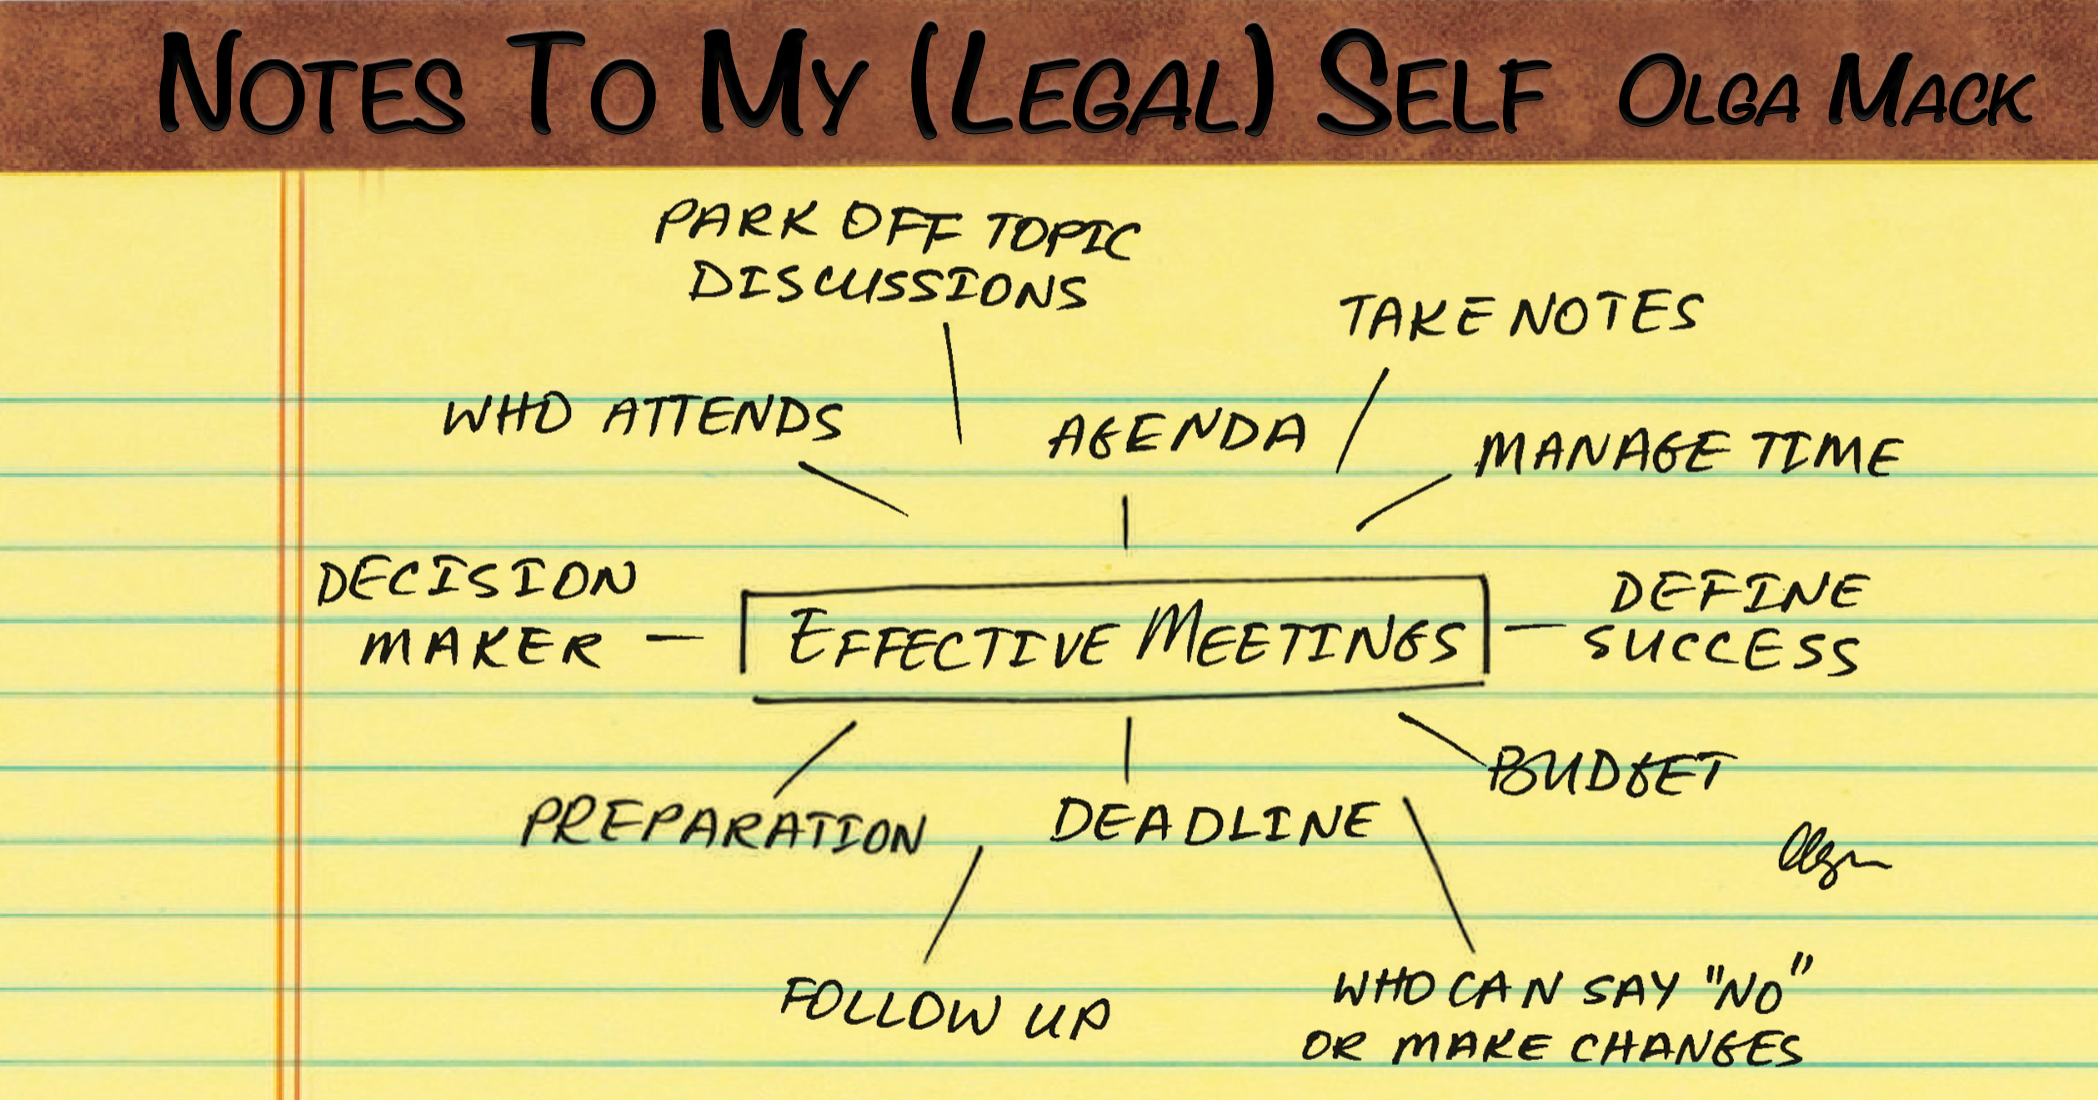 The Recipe For Successful Meetings | Above the Law